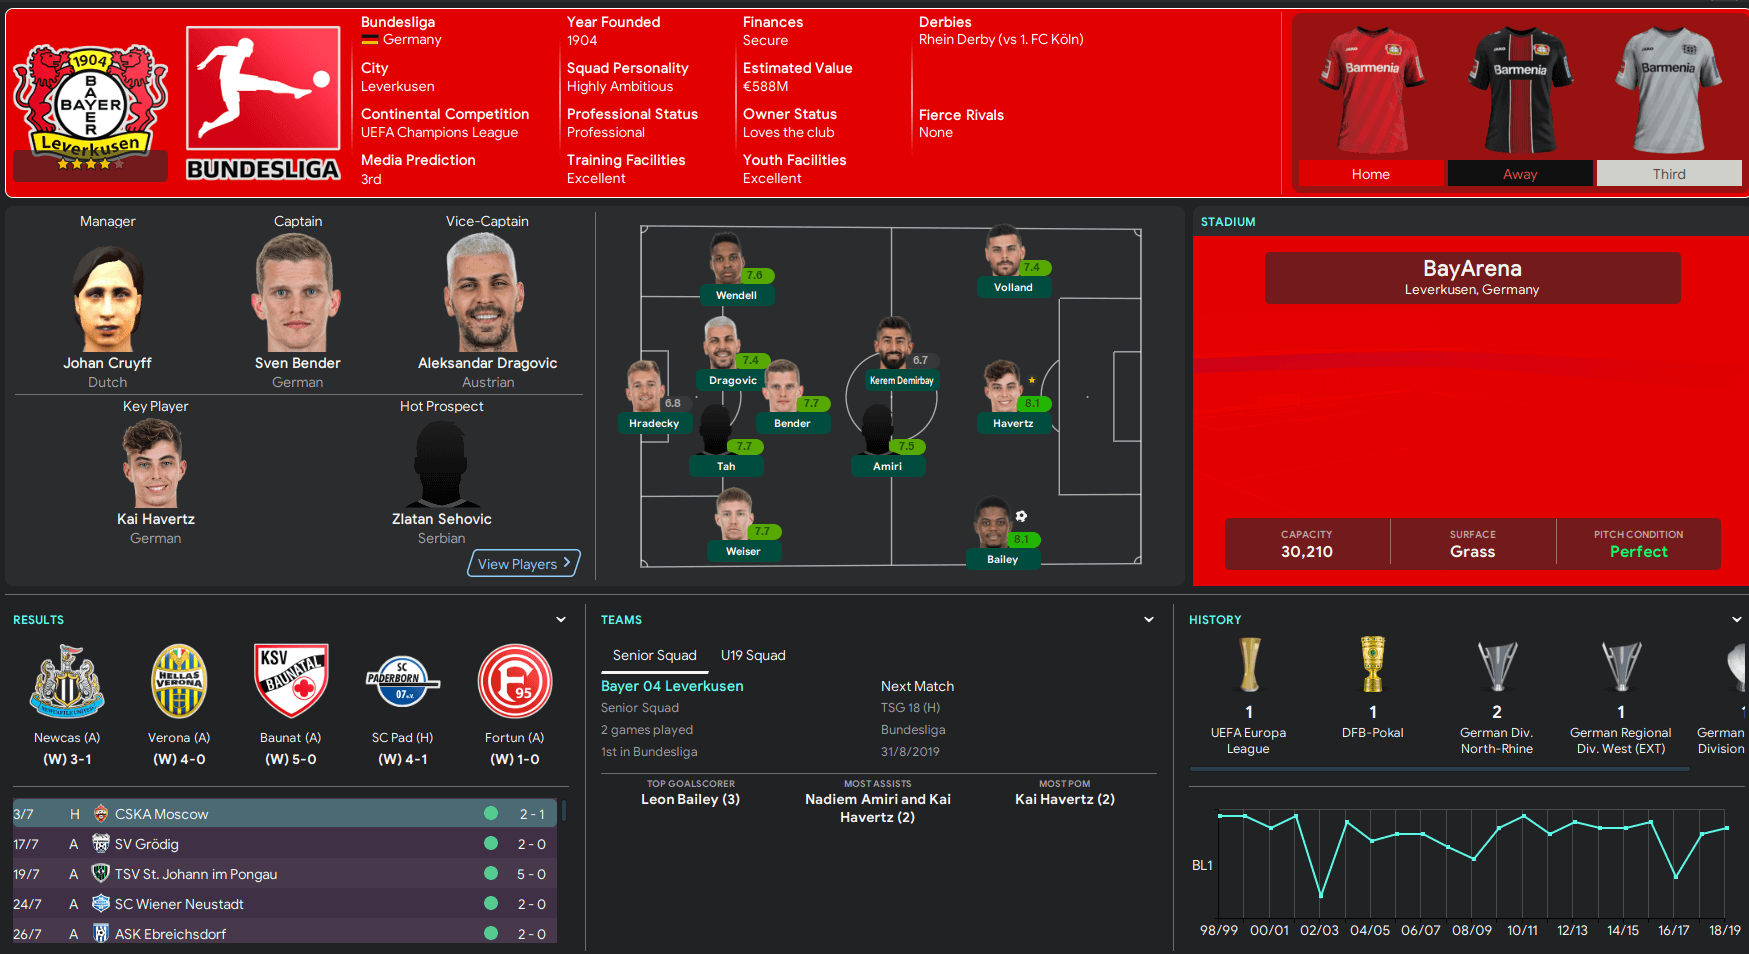 Football Manager 2020 TCS dark skin Club Overview